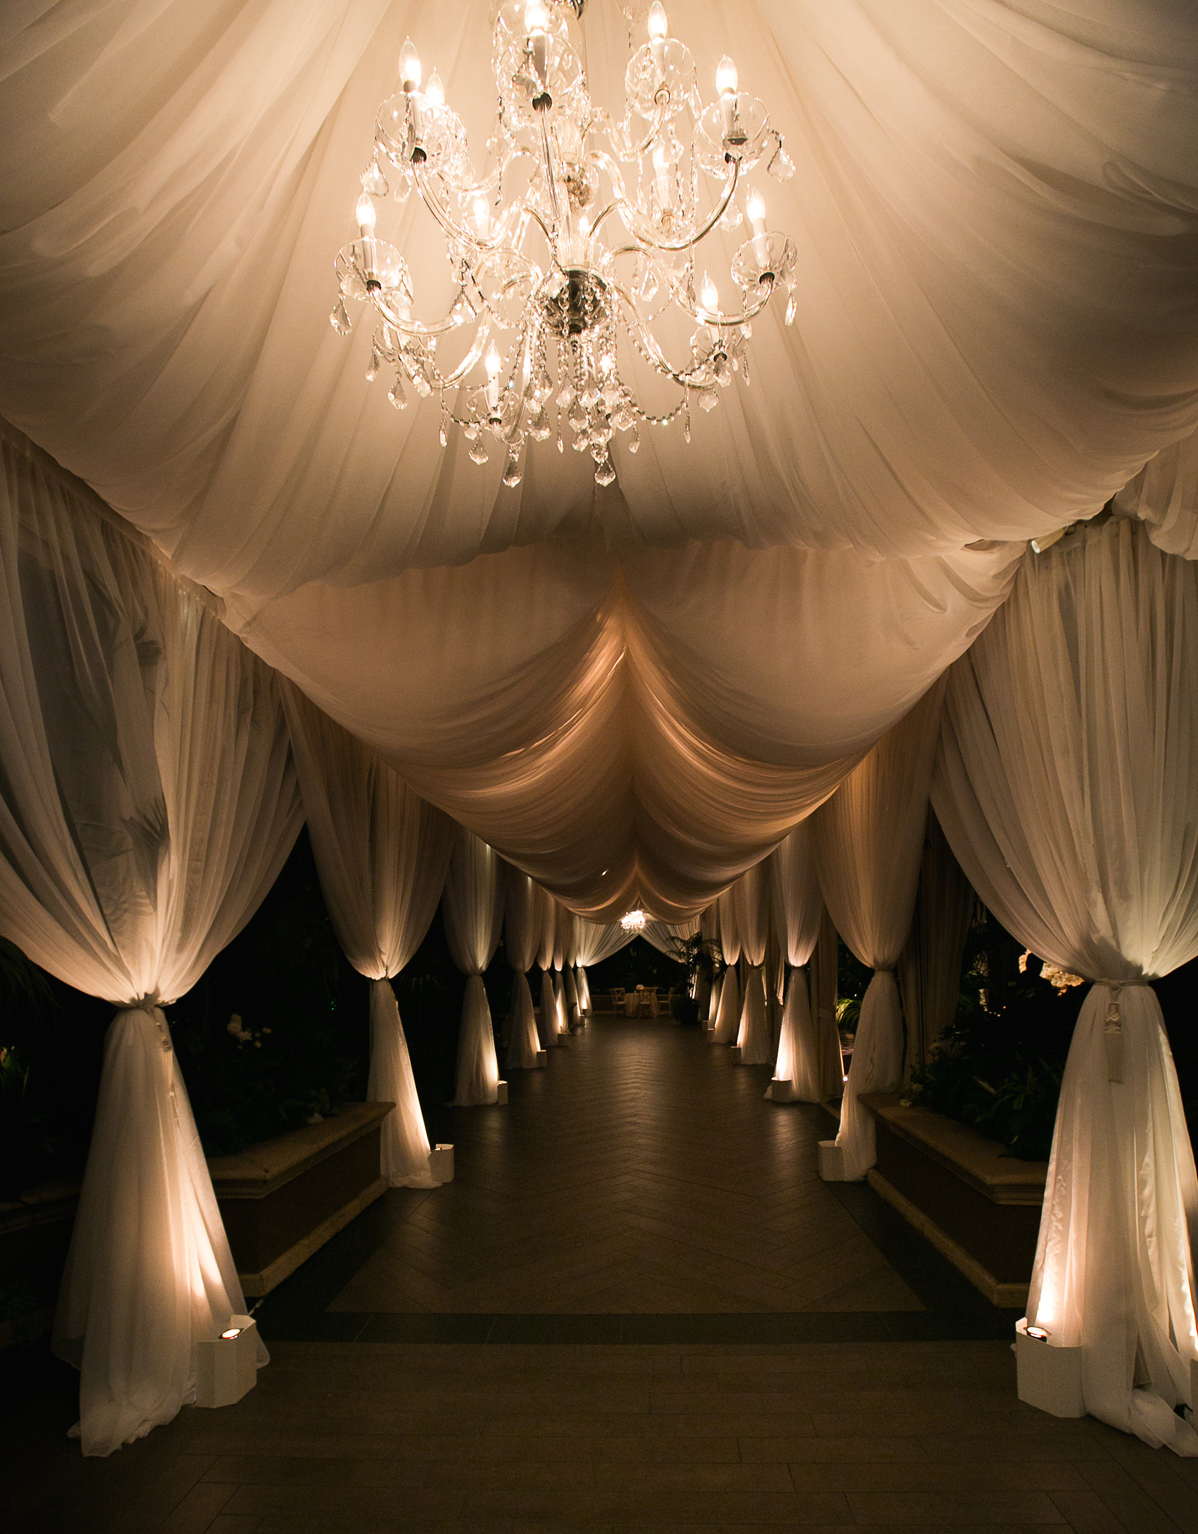 Dark Exit through drapes at wedding